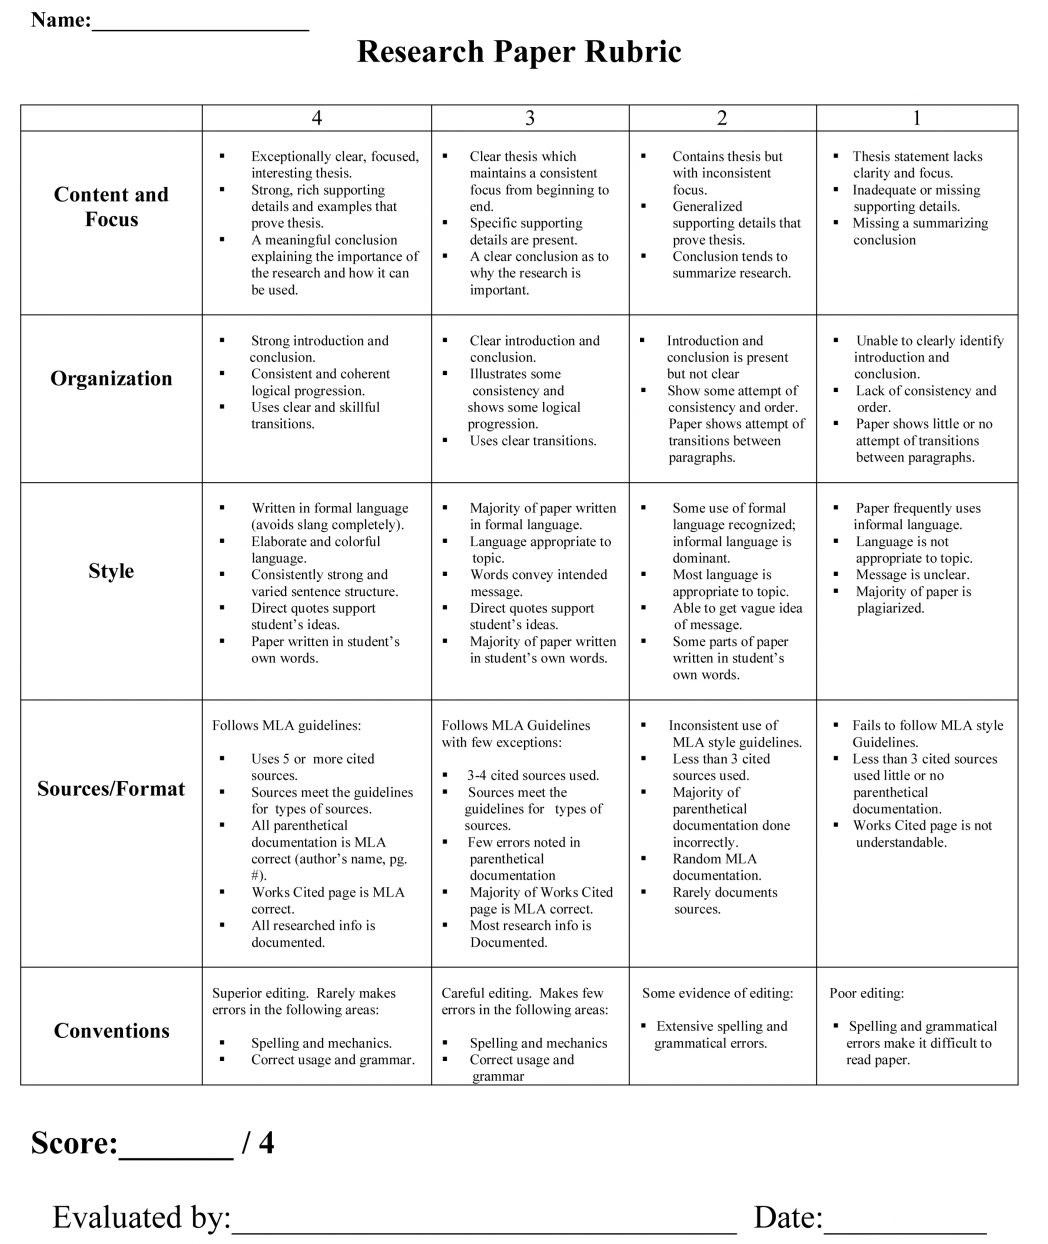 Analytic rubric for essay writing. How exactly to Write an Essay in MLA Format.